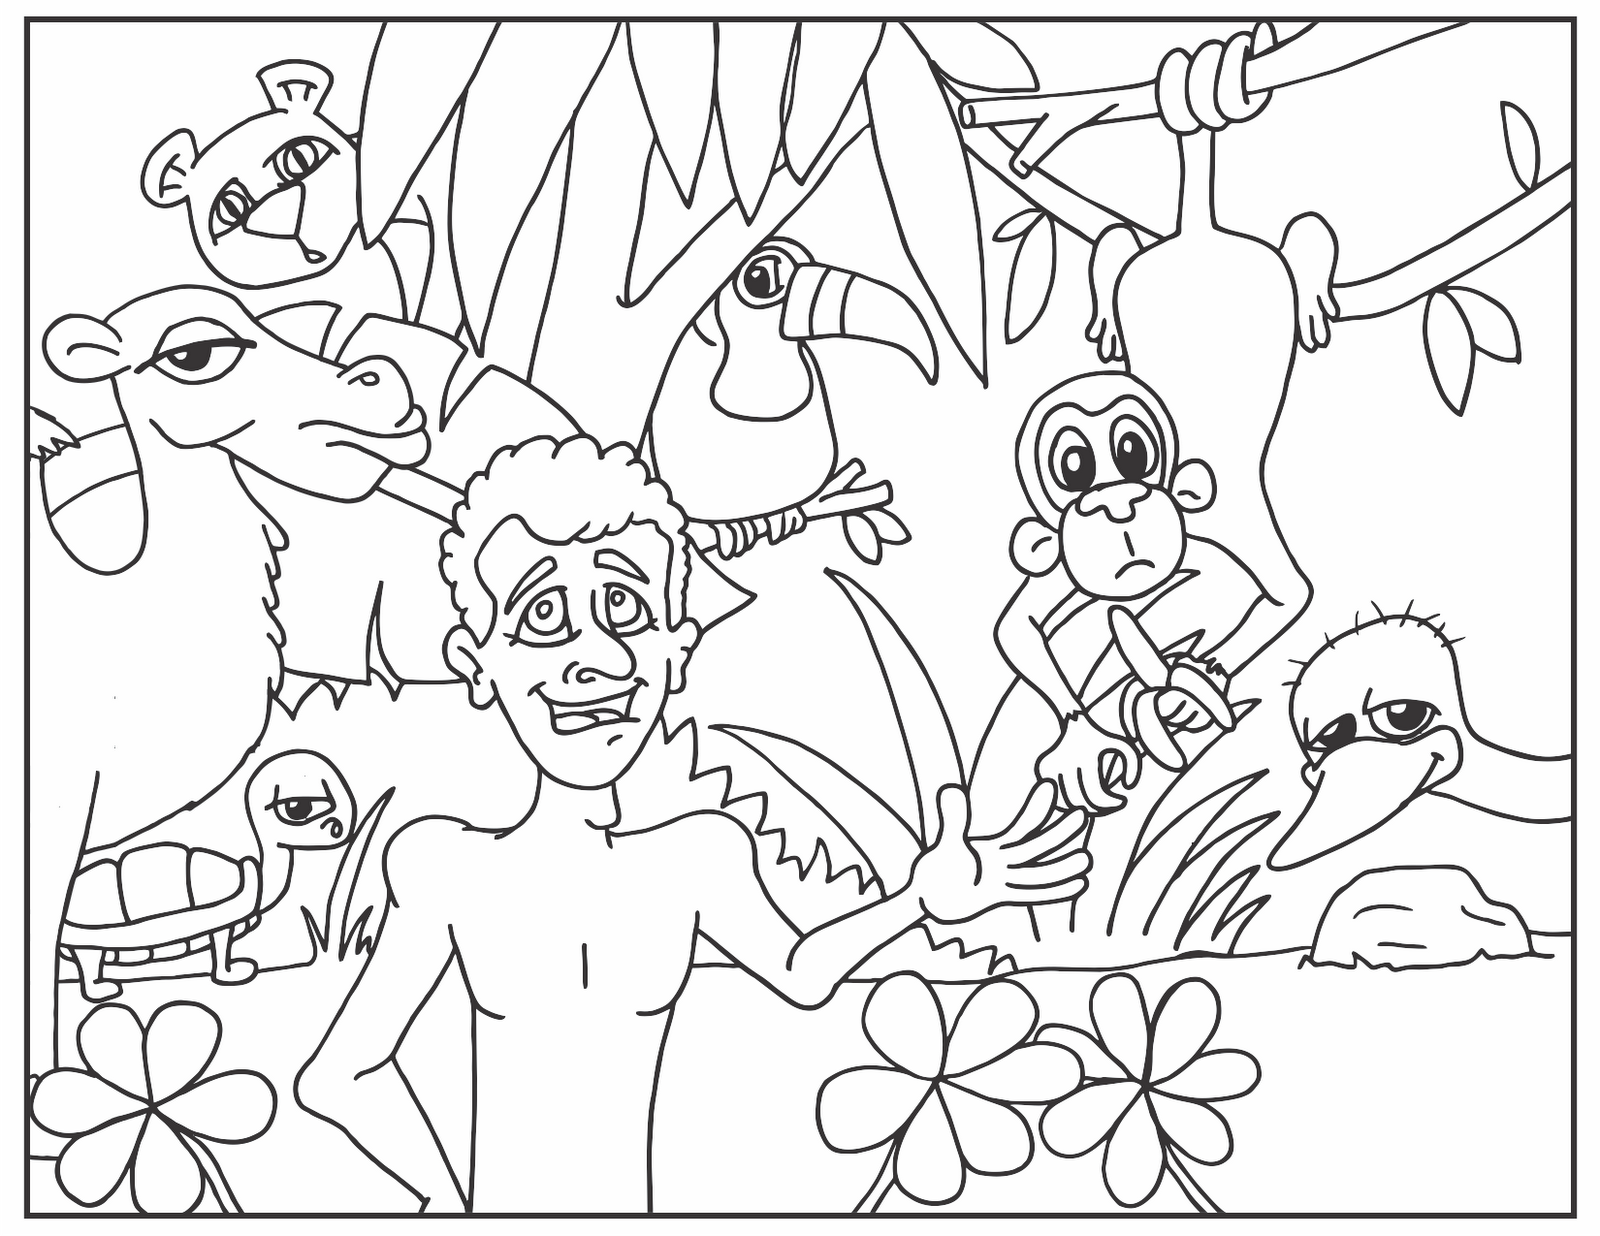 Matt's Sketch Pad: Coloring Pages for New Curriculum